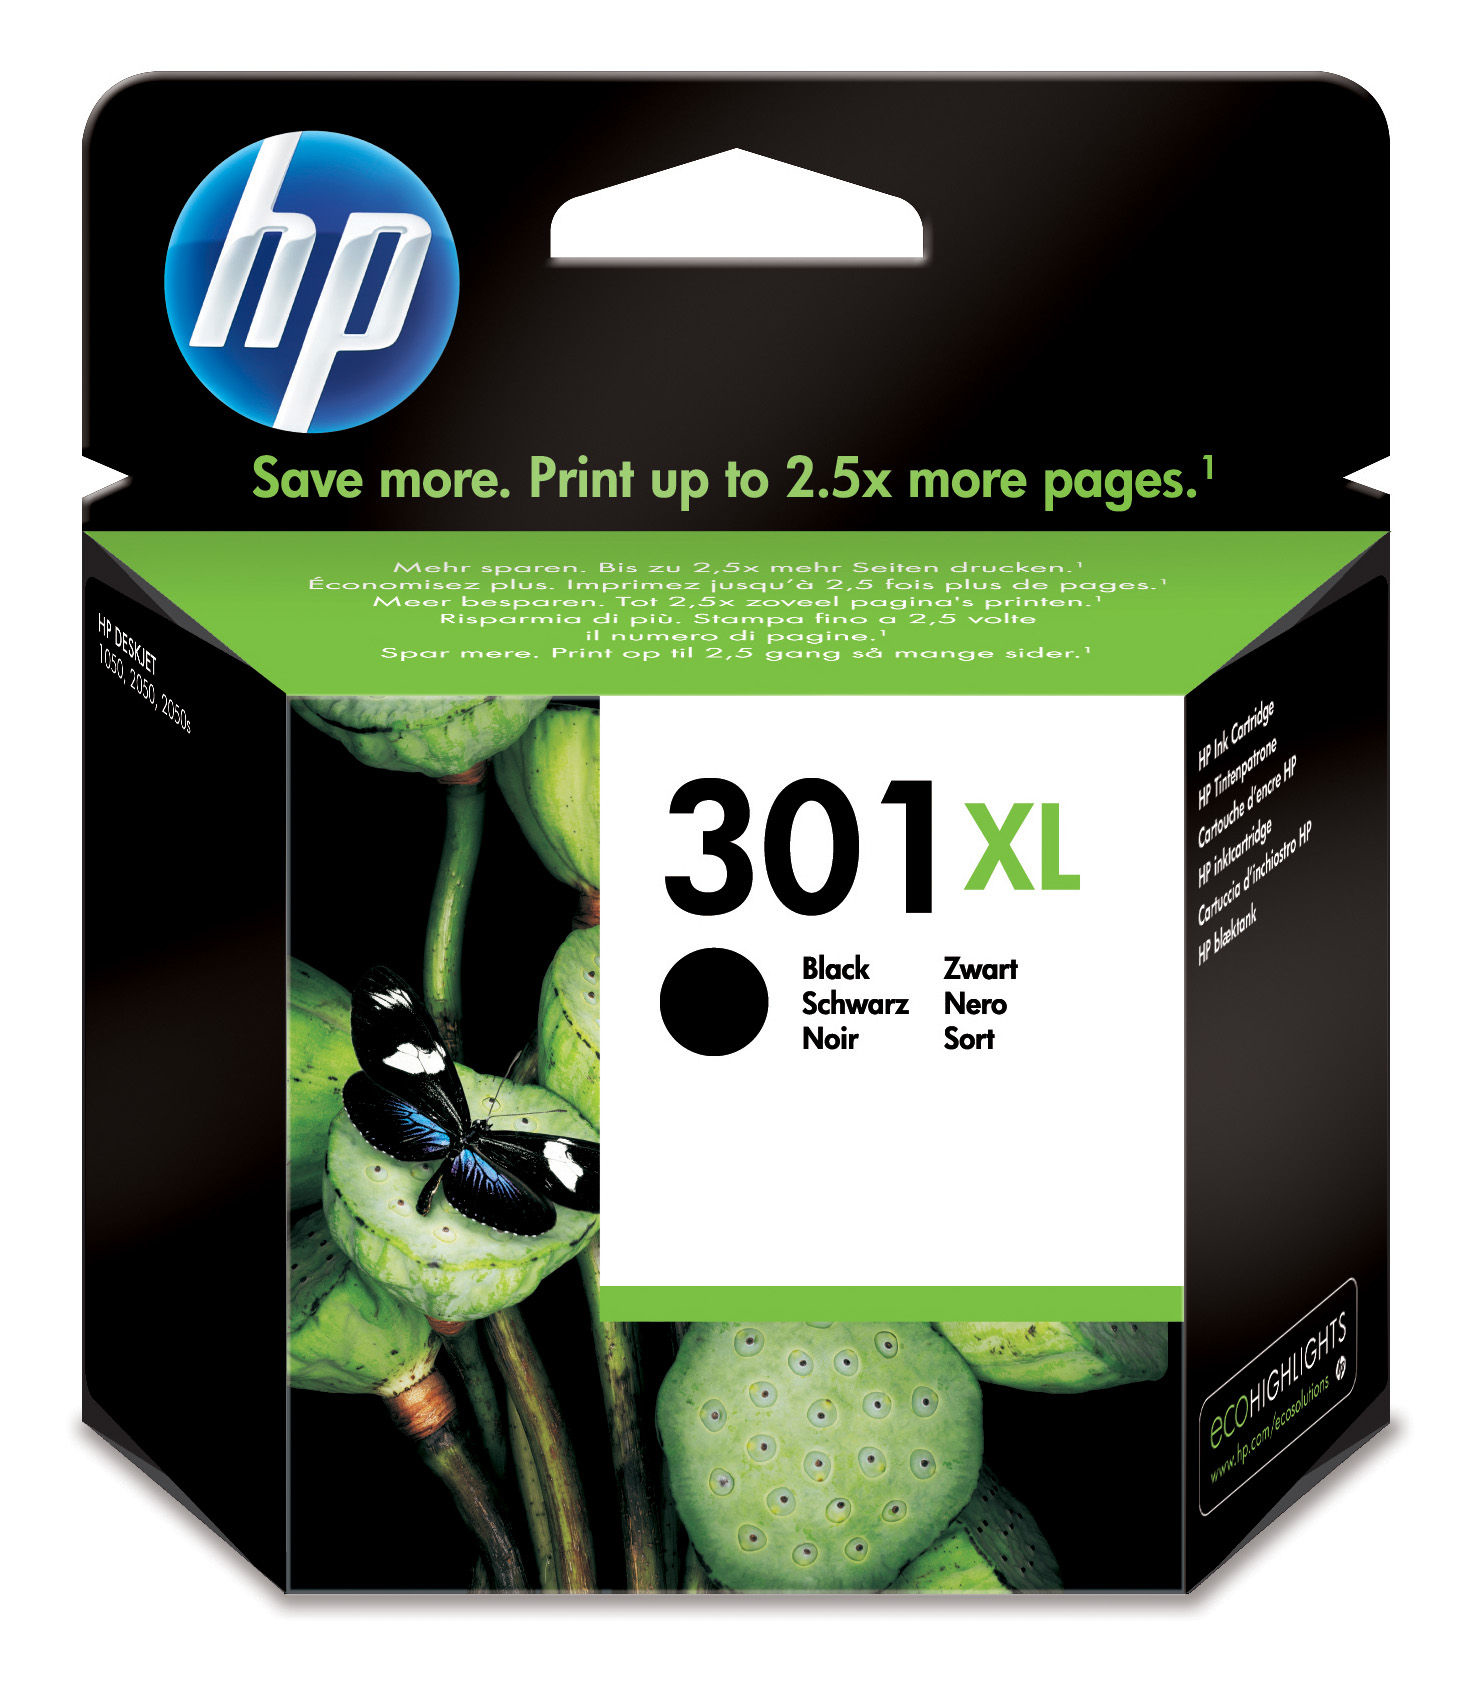 BB Reman HP CH563EE (301XL) Black Ink Cart CH563EE - rem01